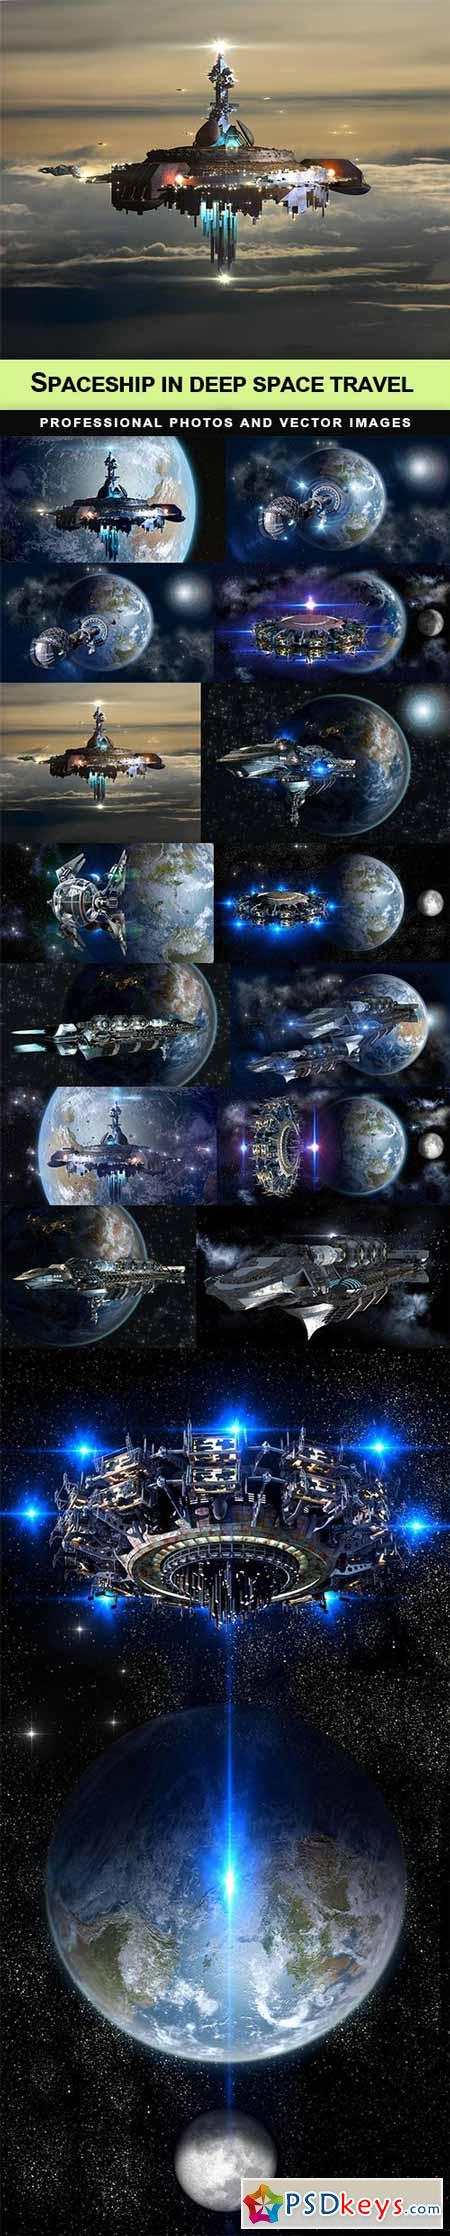 Spaceship in deep space travel - 15 UHQ JPEG